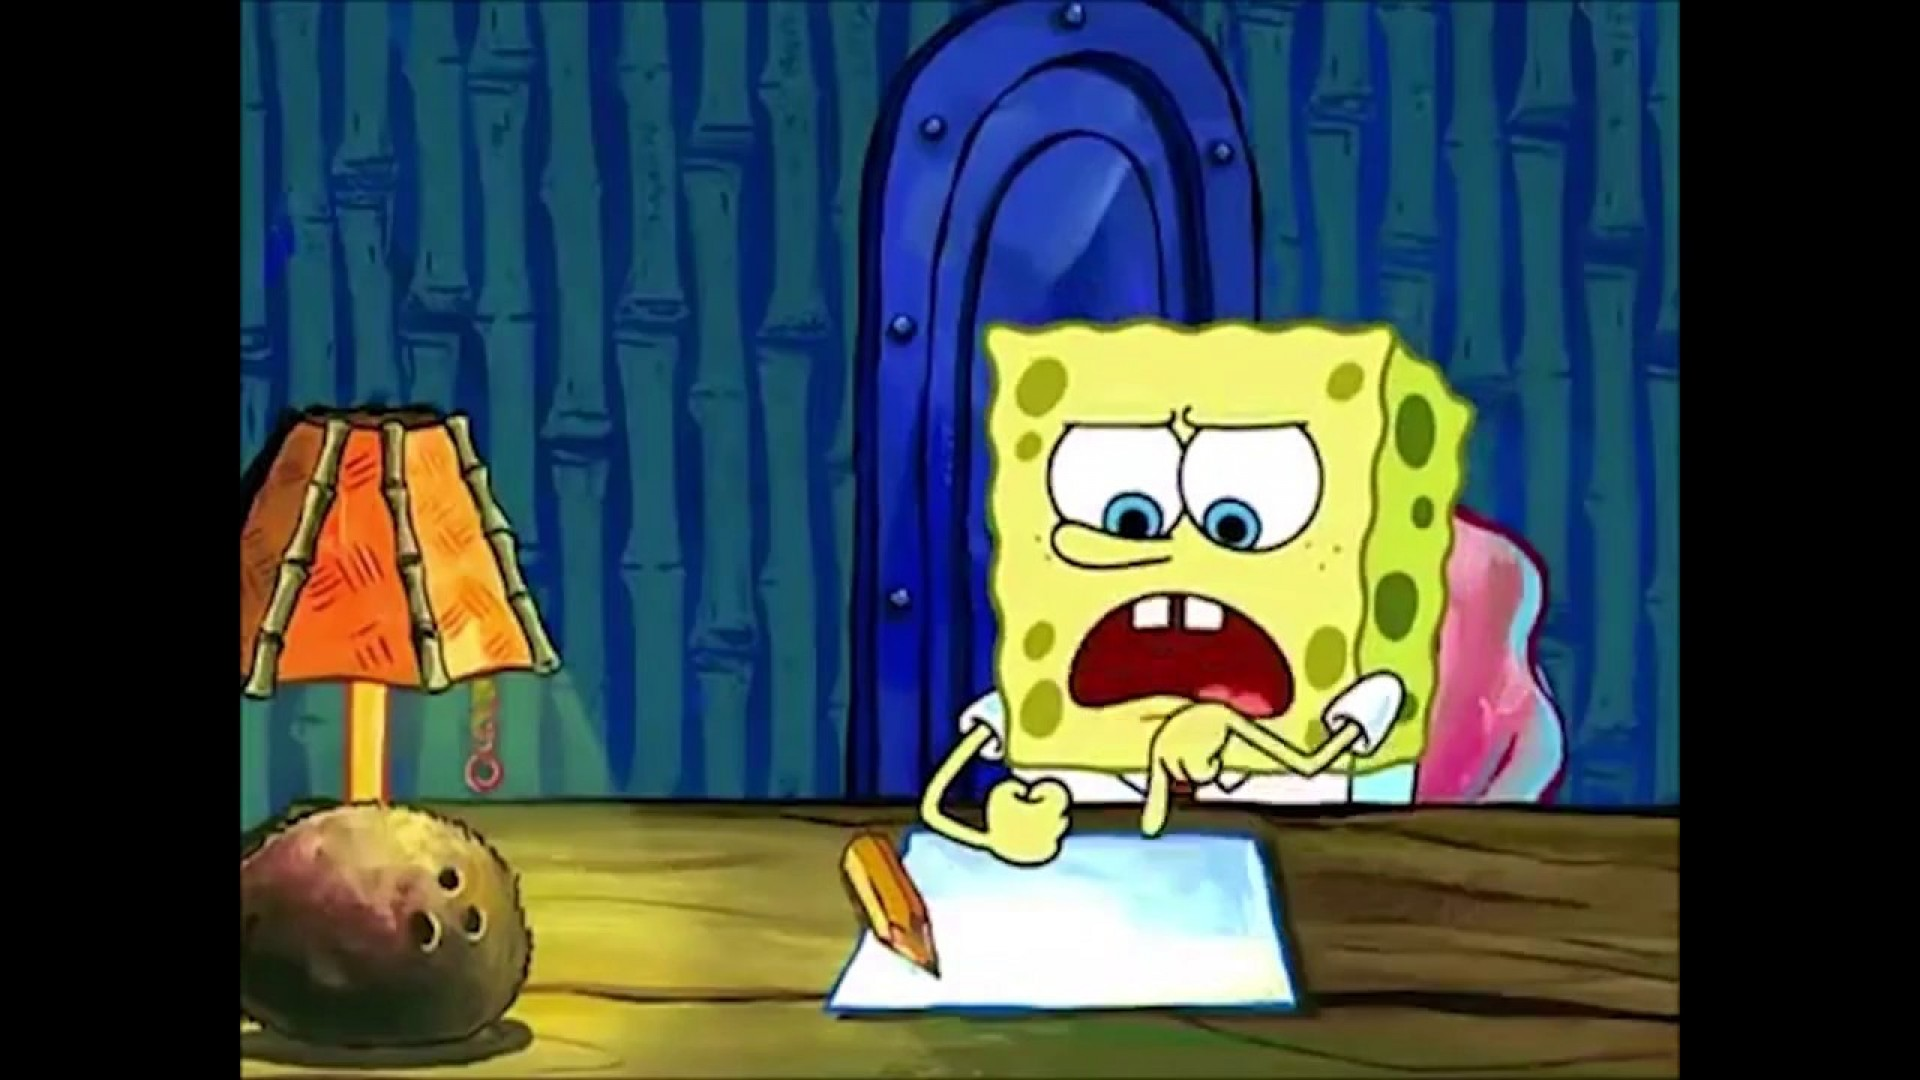 002 Essay Example Spongebob Spongebobs Youtube Maxresde Writing For Hours Rap The Font Meme Surprising House 1920